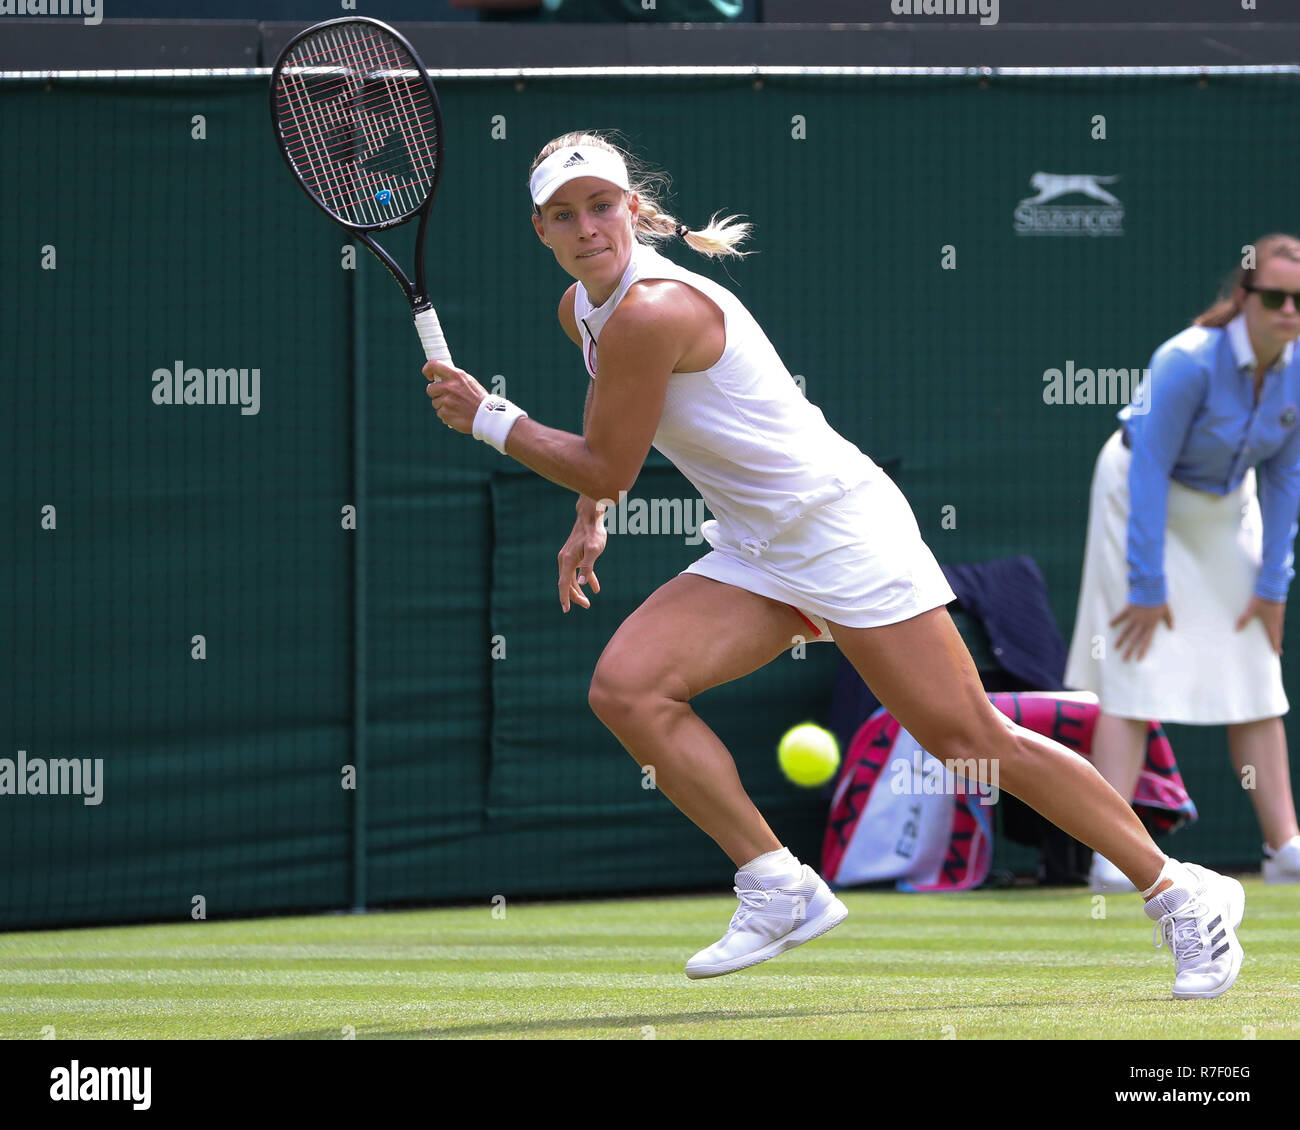 German  player Angelique Kerber in action at Wimbledon,London, Great Britain, United Kingdom. - Stock Image